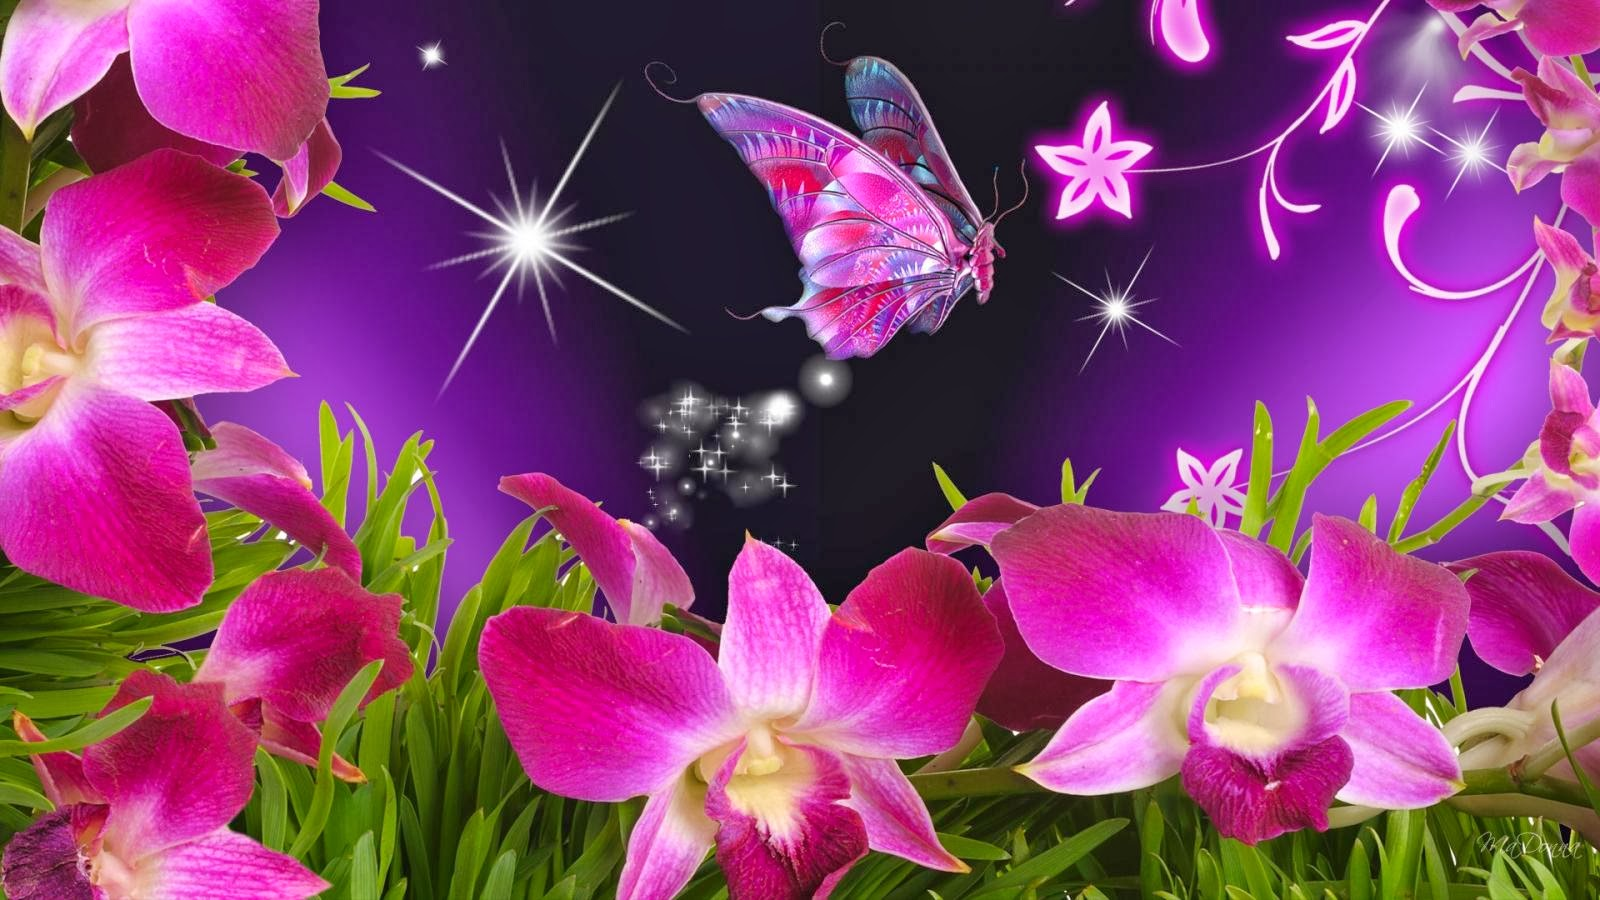 Beautiful pictures of flowers and butterflies amazing wallpapers butterfly flowers orchid description and beautiful butterfly in izmirmasajfo